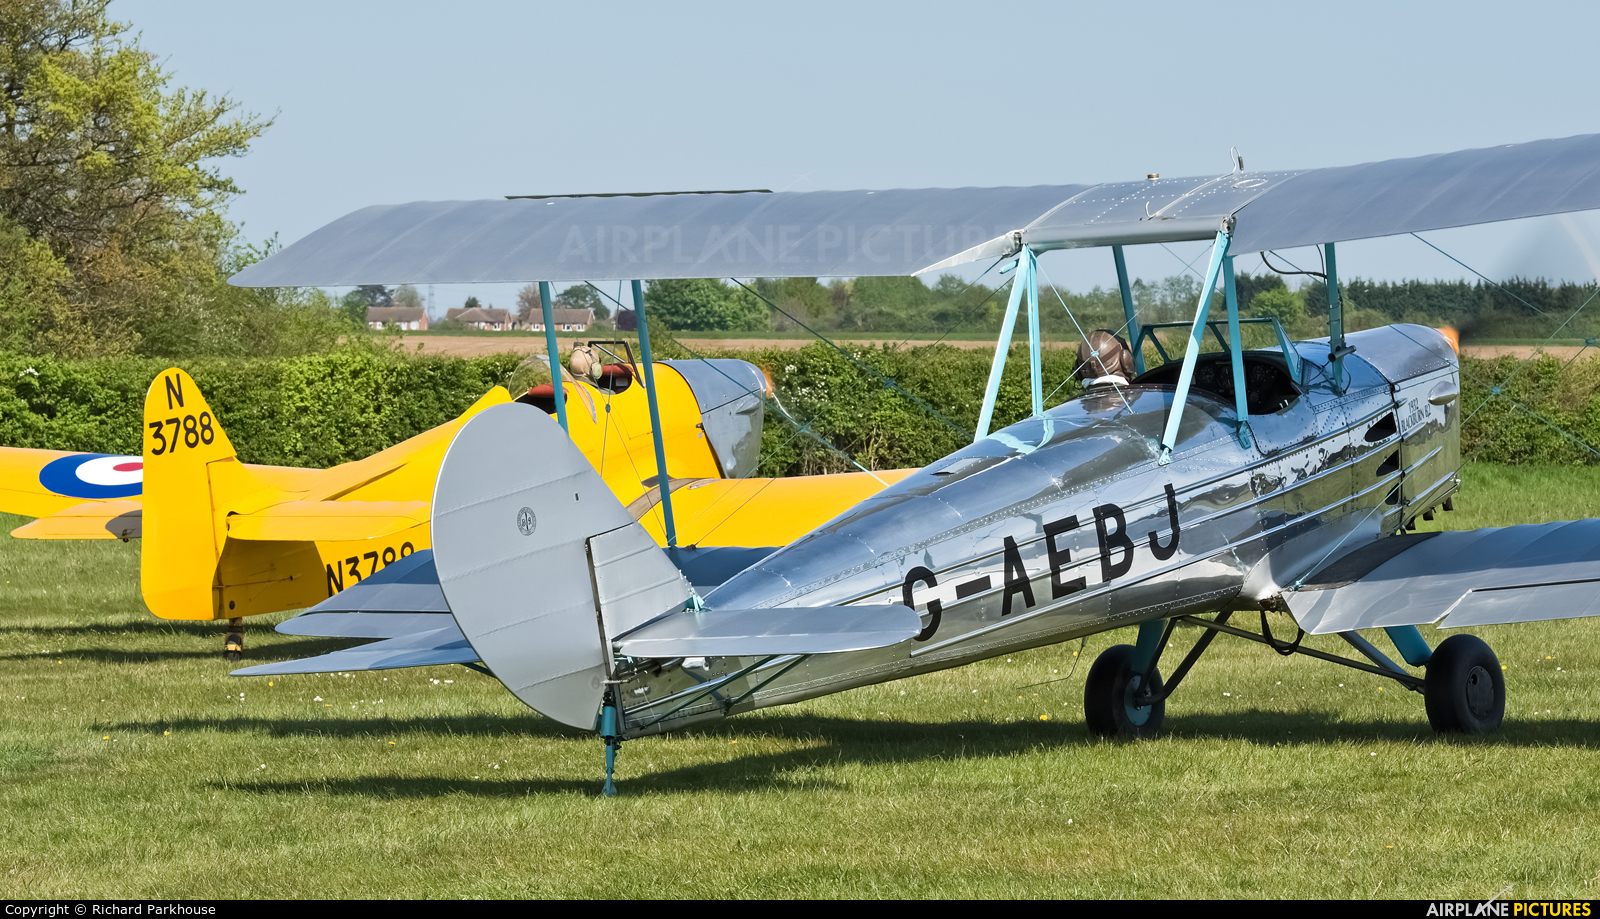 The Shuttleworth Collection G-AEBJ aircraft at Old Warden